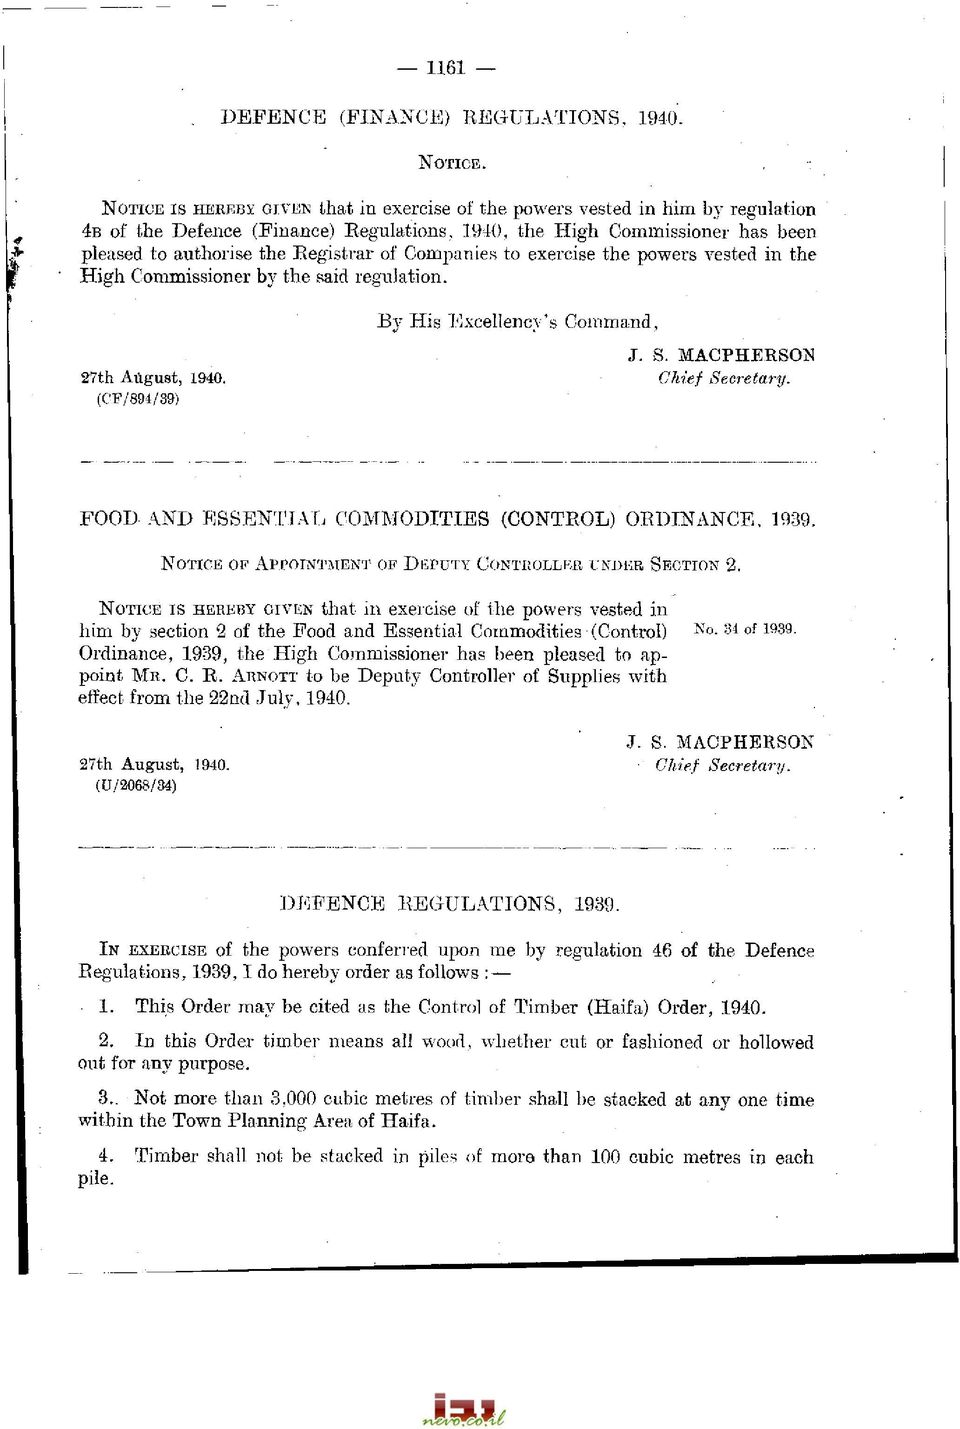 Companies to exercise the powers vested in the High Commissioner by the said regulation. By His Excellency's Command, J. S. MACPHERSON 27th August, 1940. Chief Secretary.